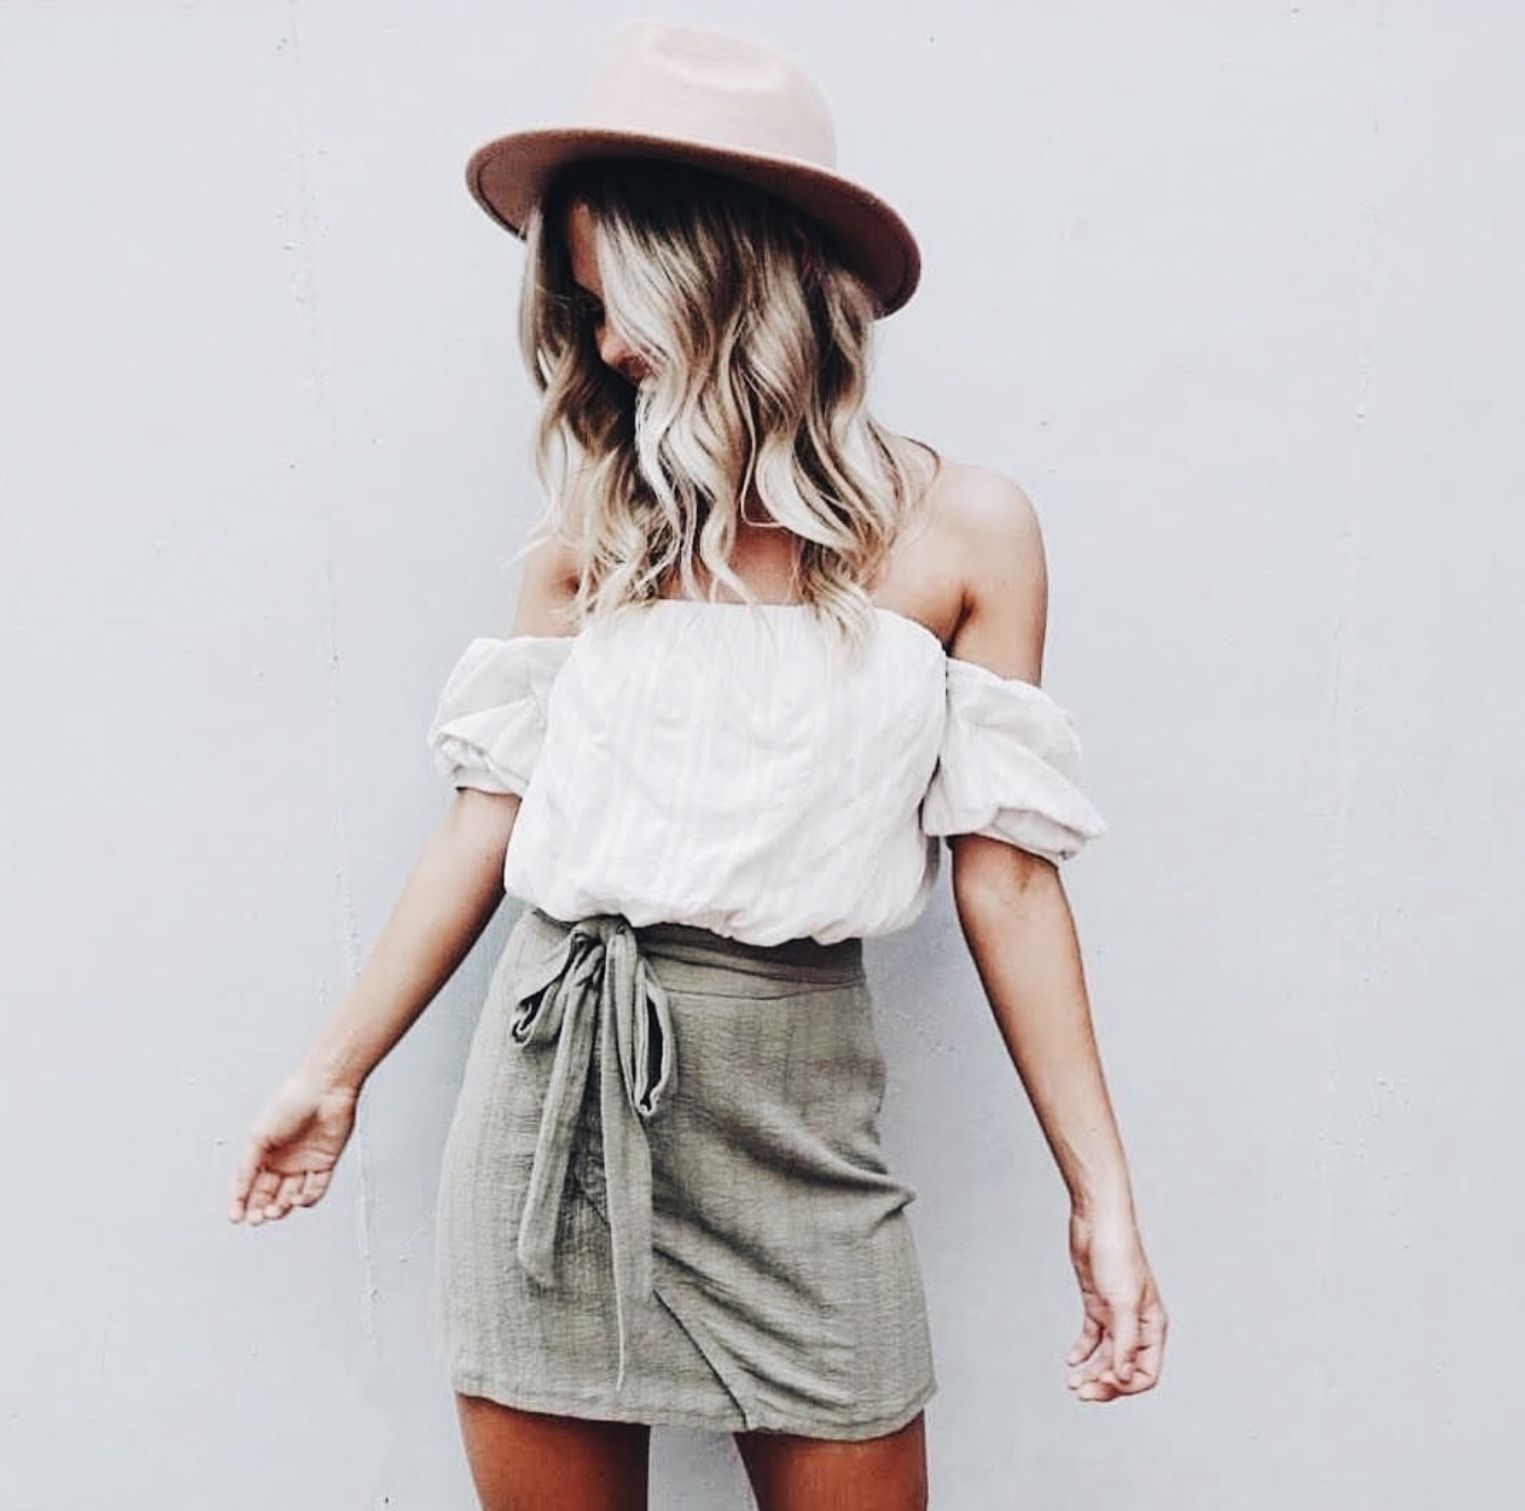 Pin by Dasher Smith on Clothes | Pinterest | Fashion ...